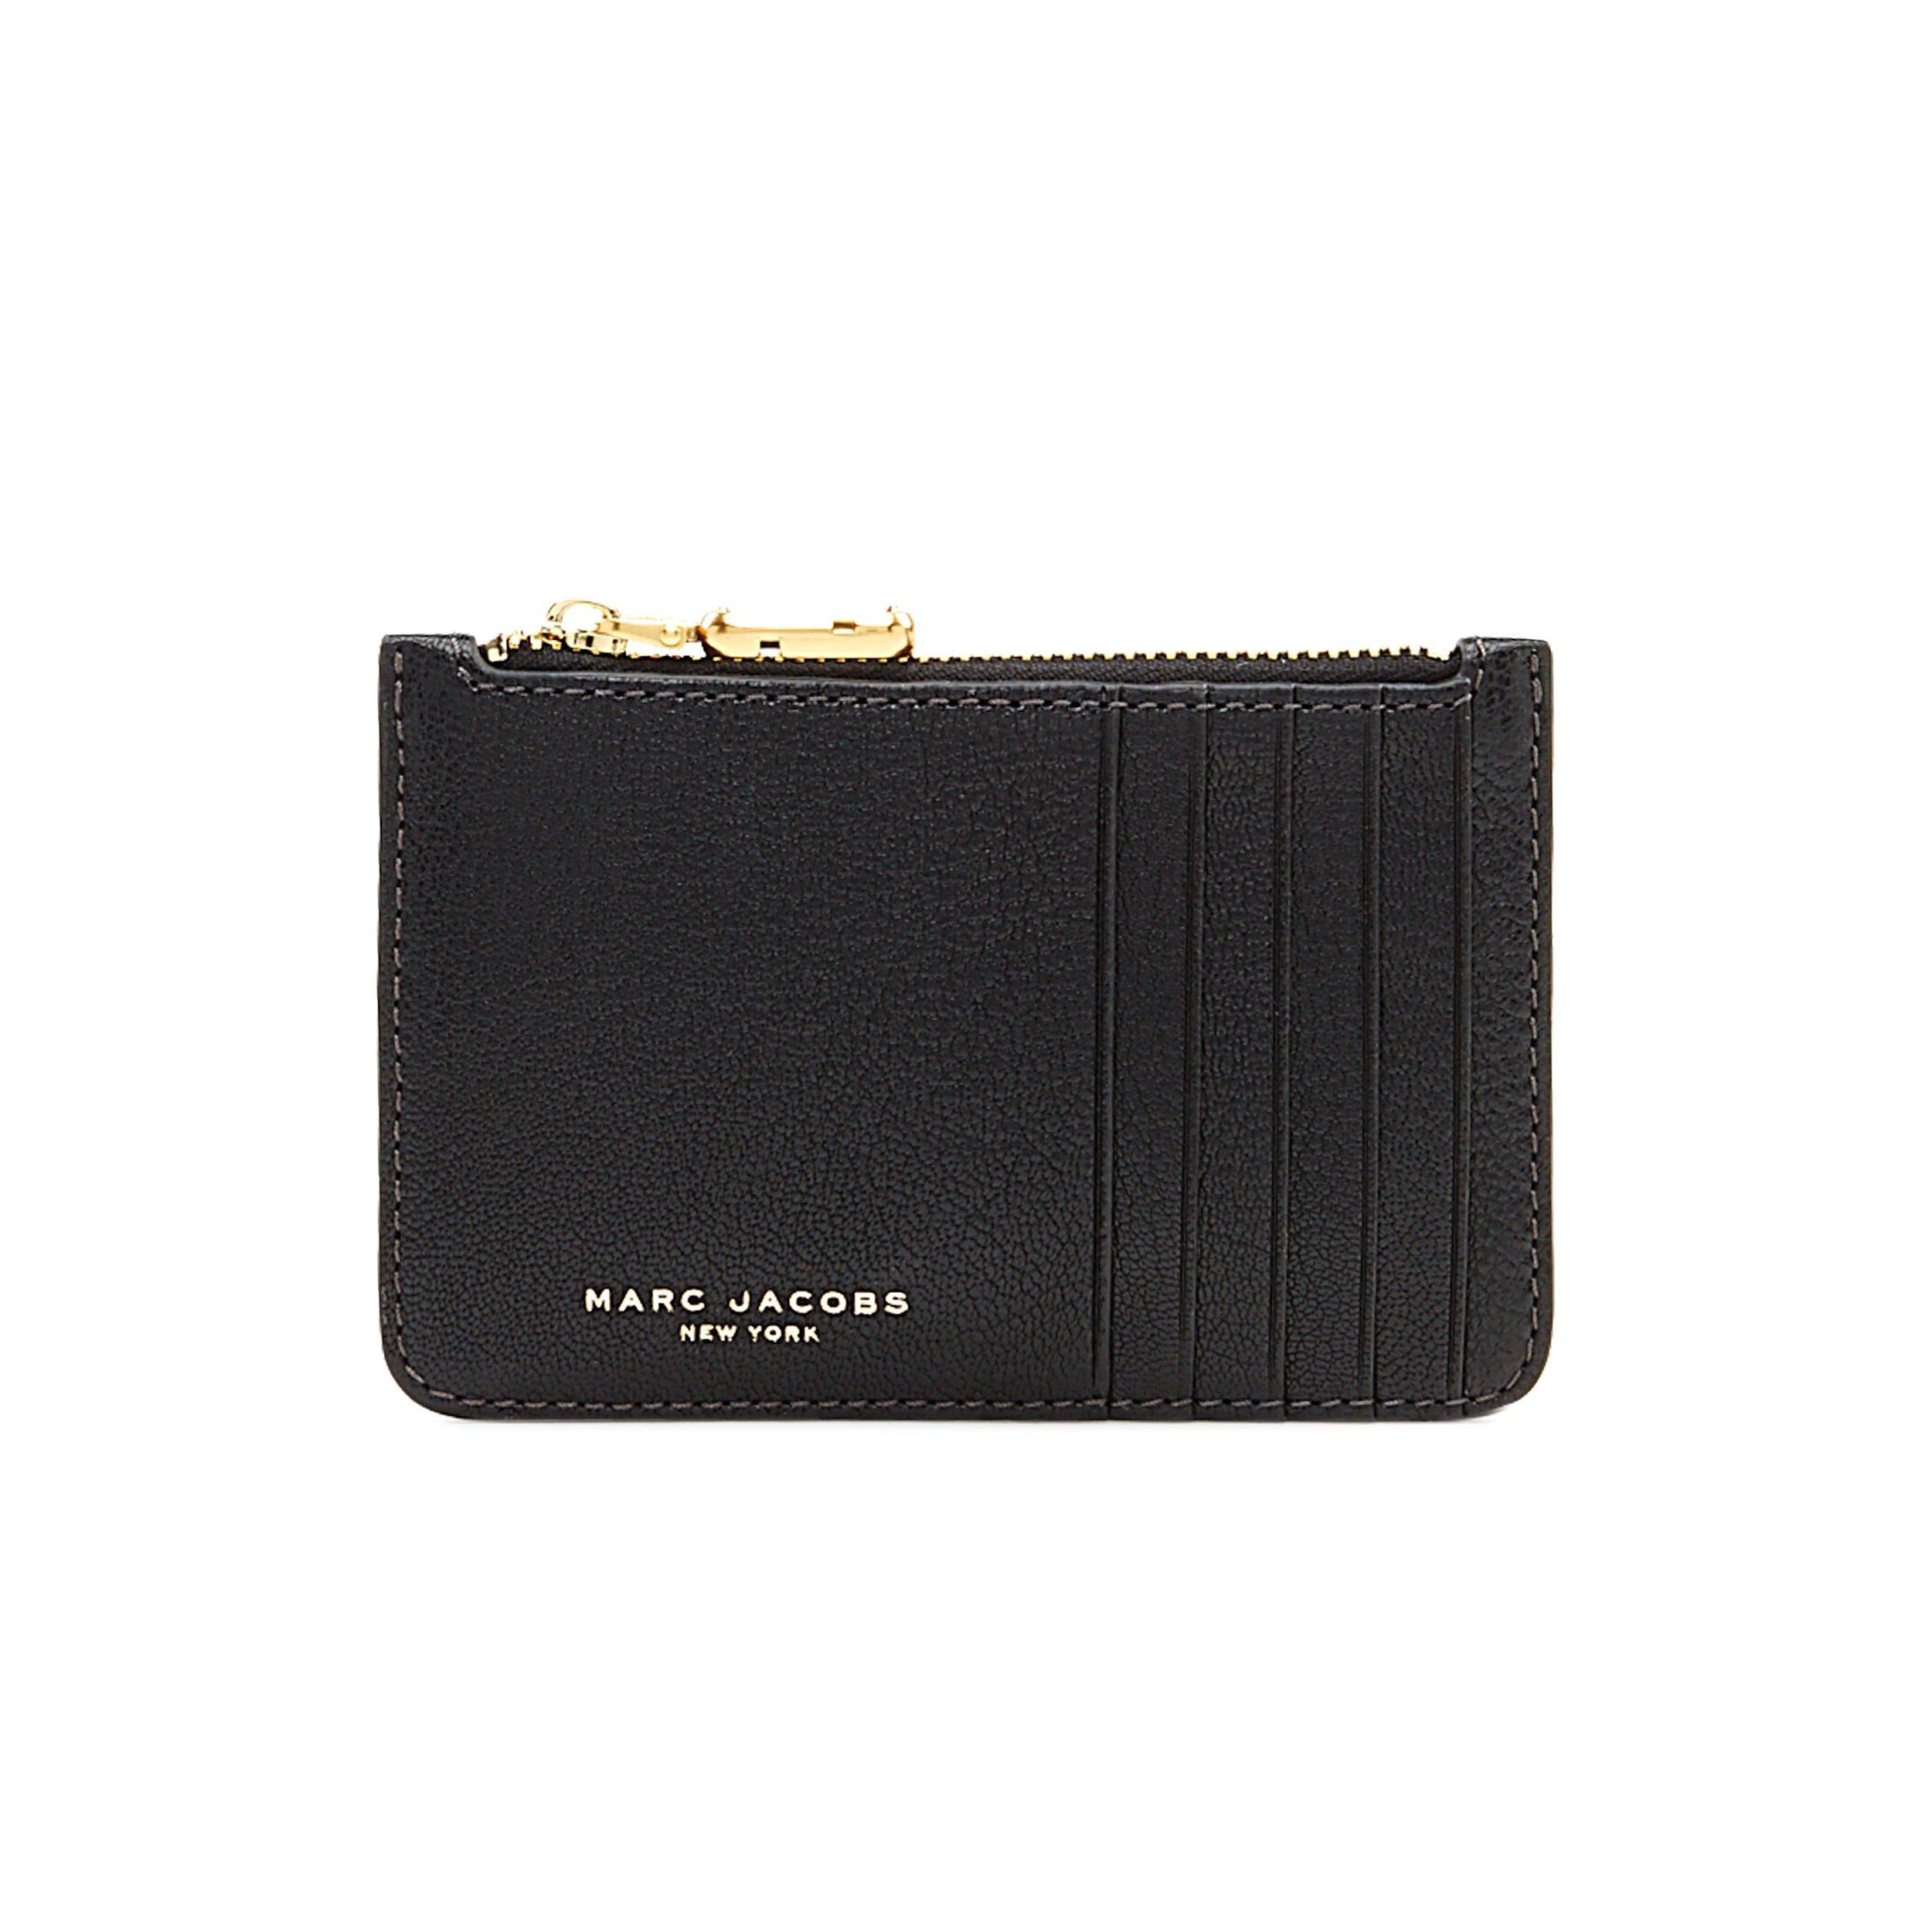 04498b66960 Marc Jacobs - Perry Leather Zip Card Pung - Phigo Fine Luxury